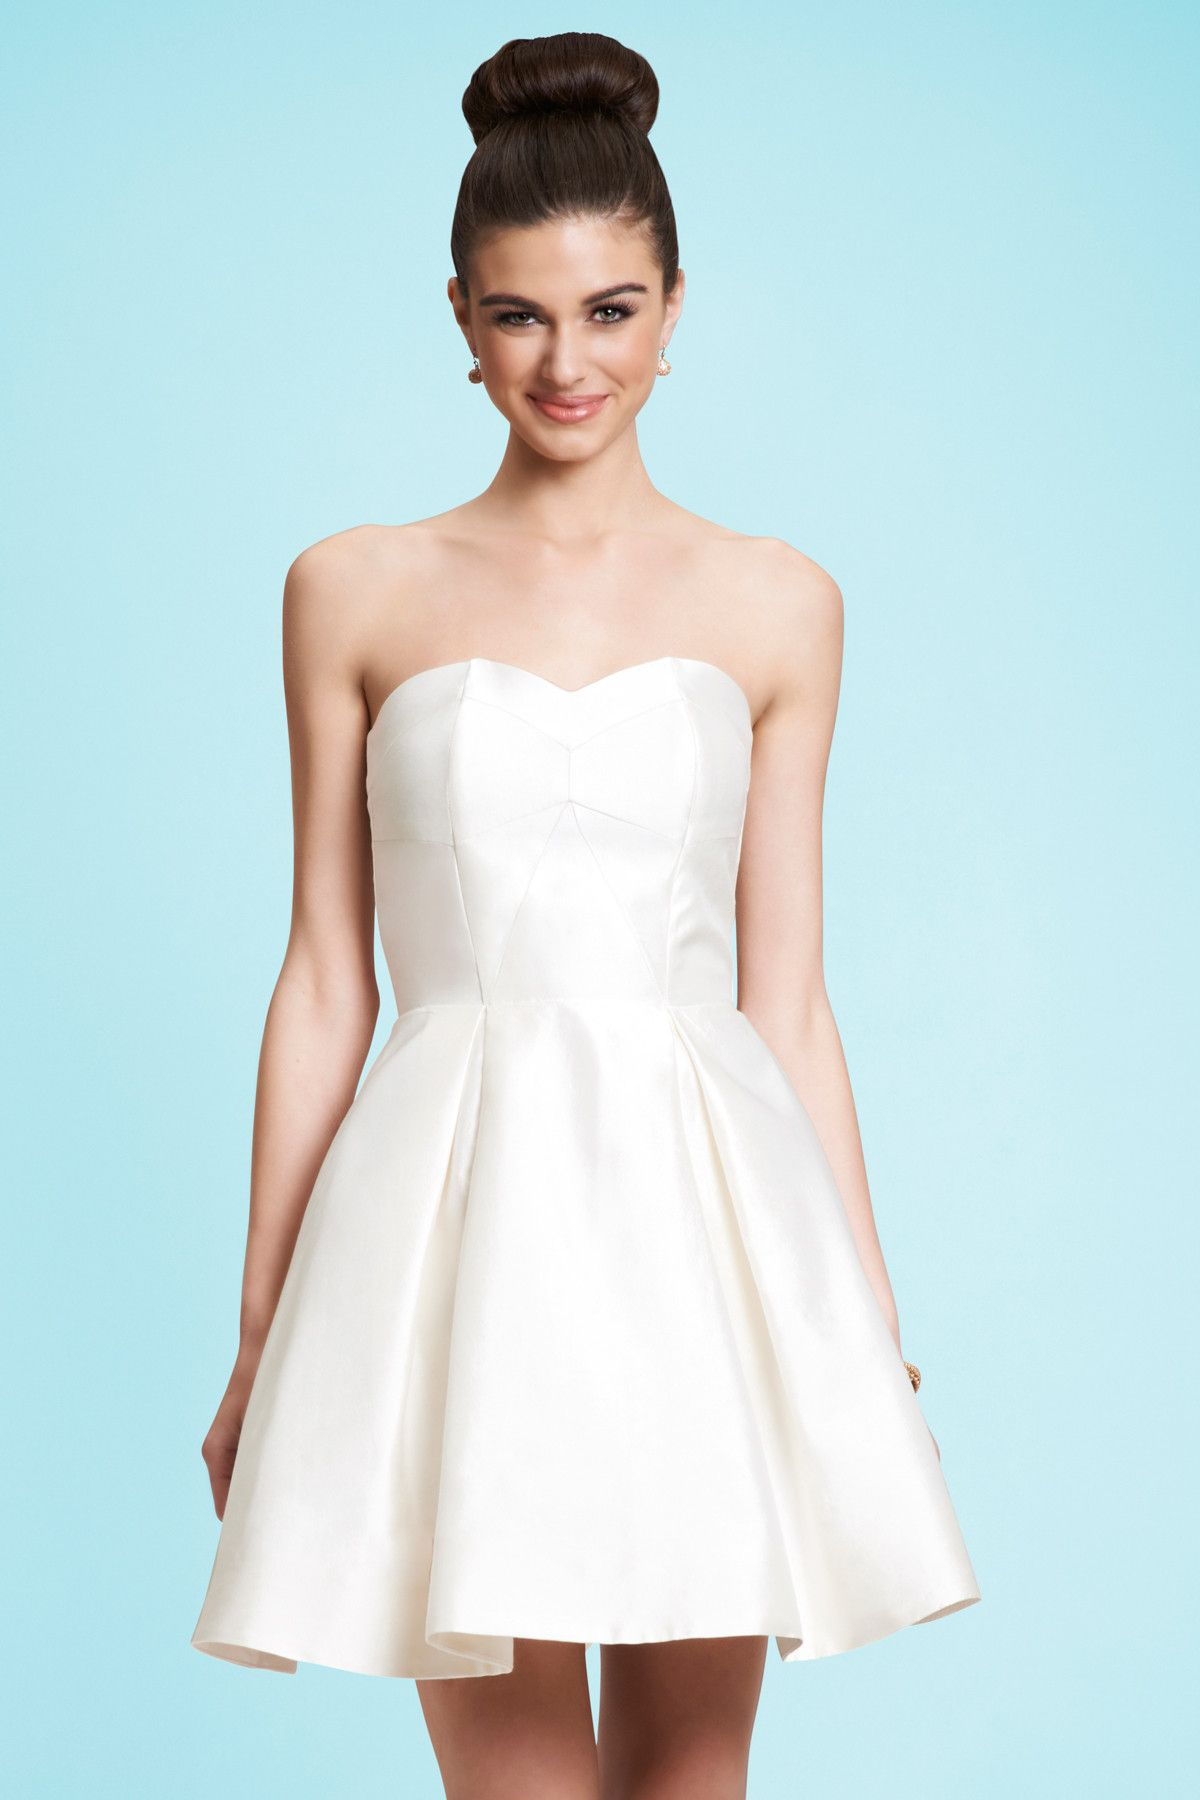 Kirribilla — VIOLET dress - I Do! #shortweddingdress #whitedress ...